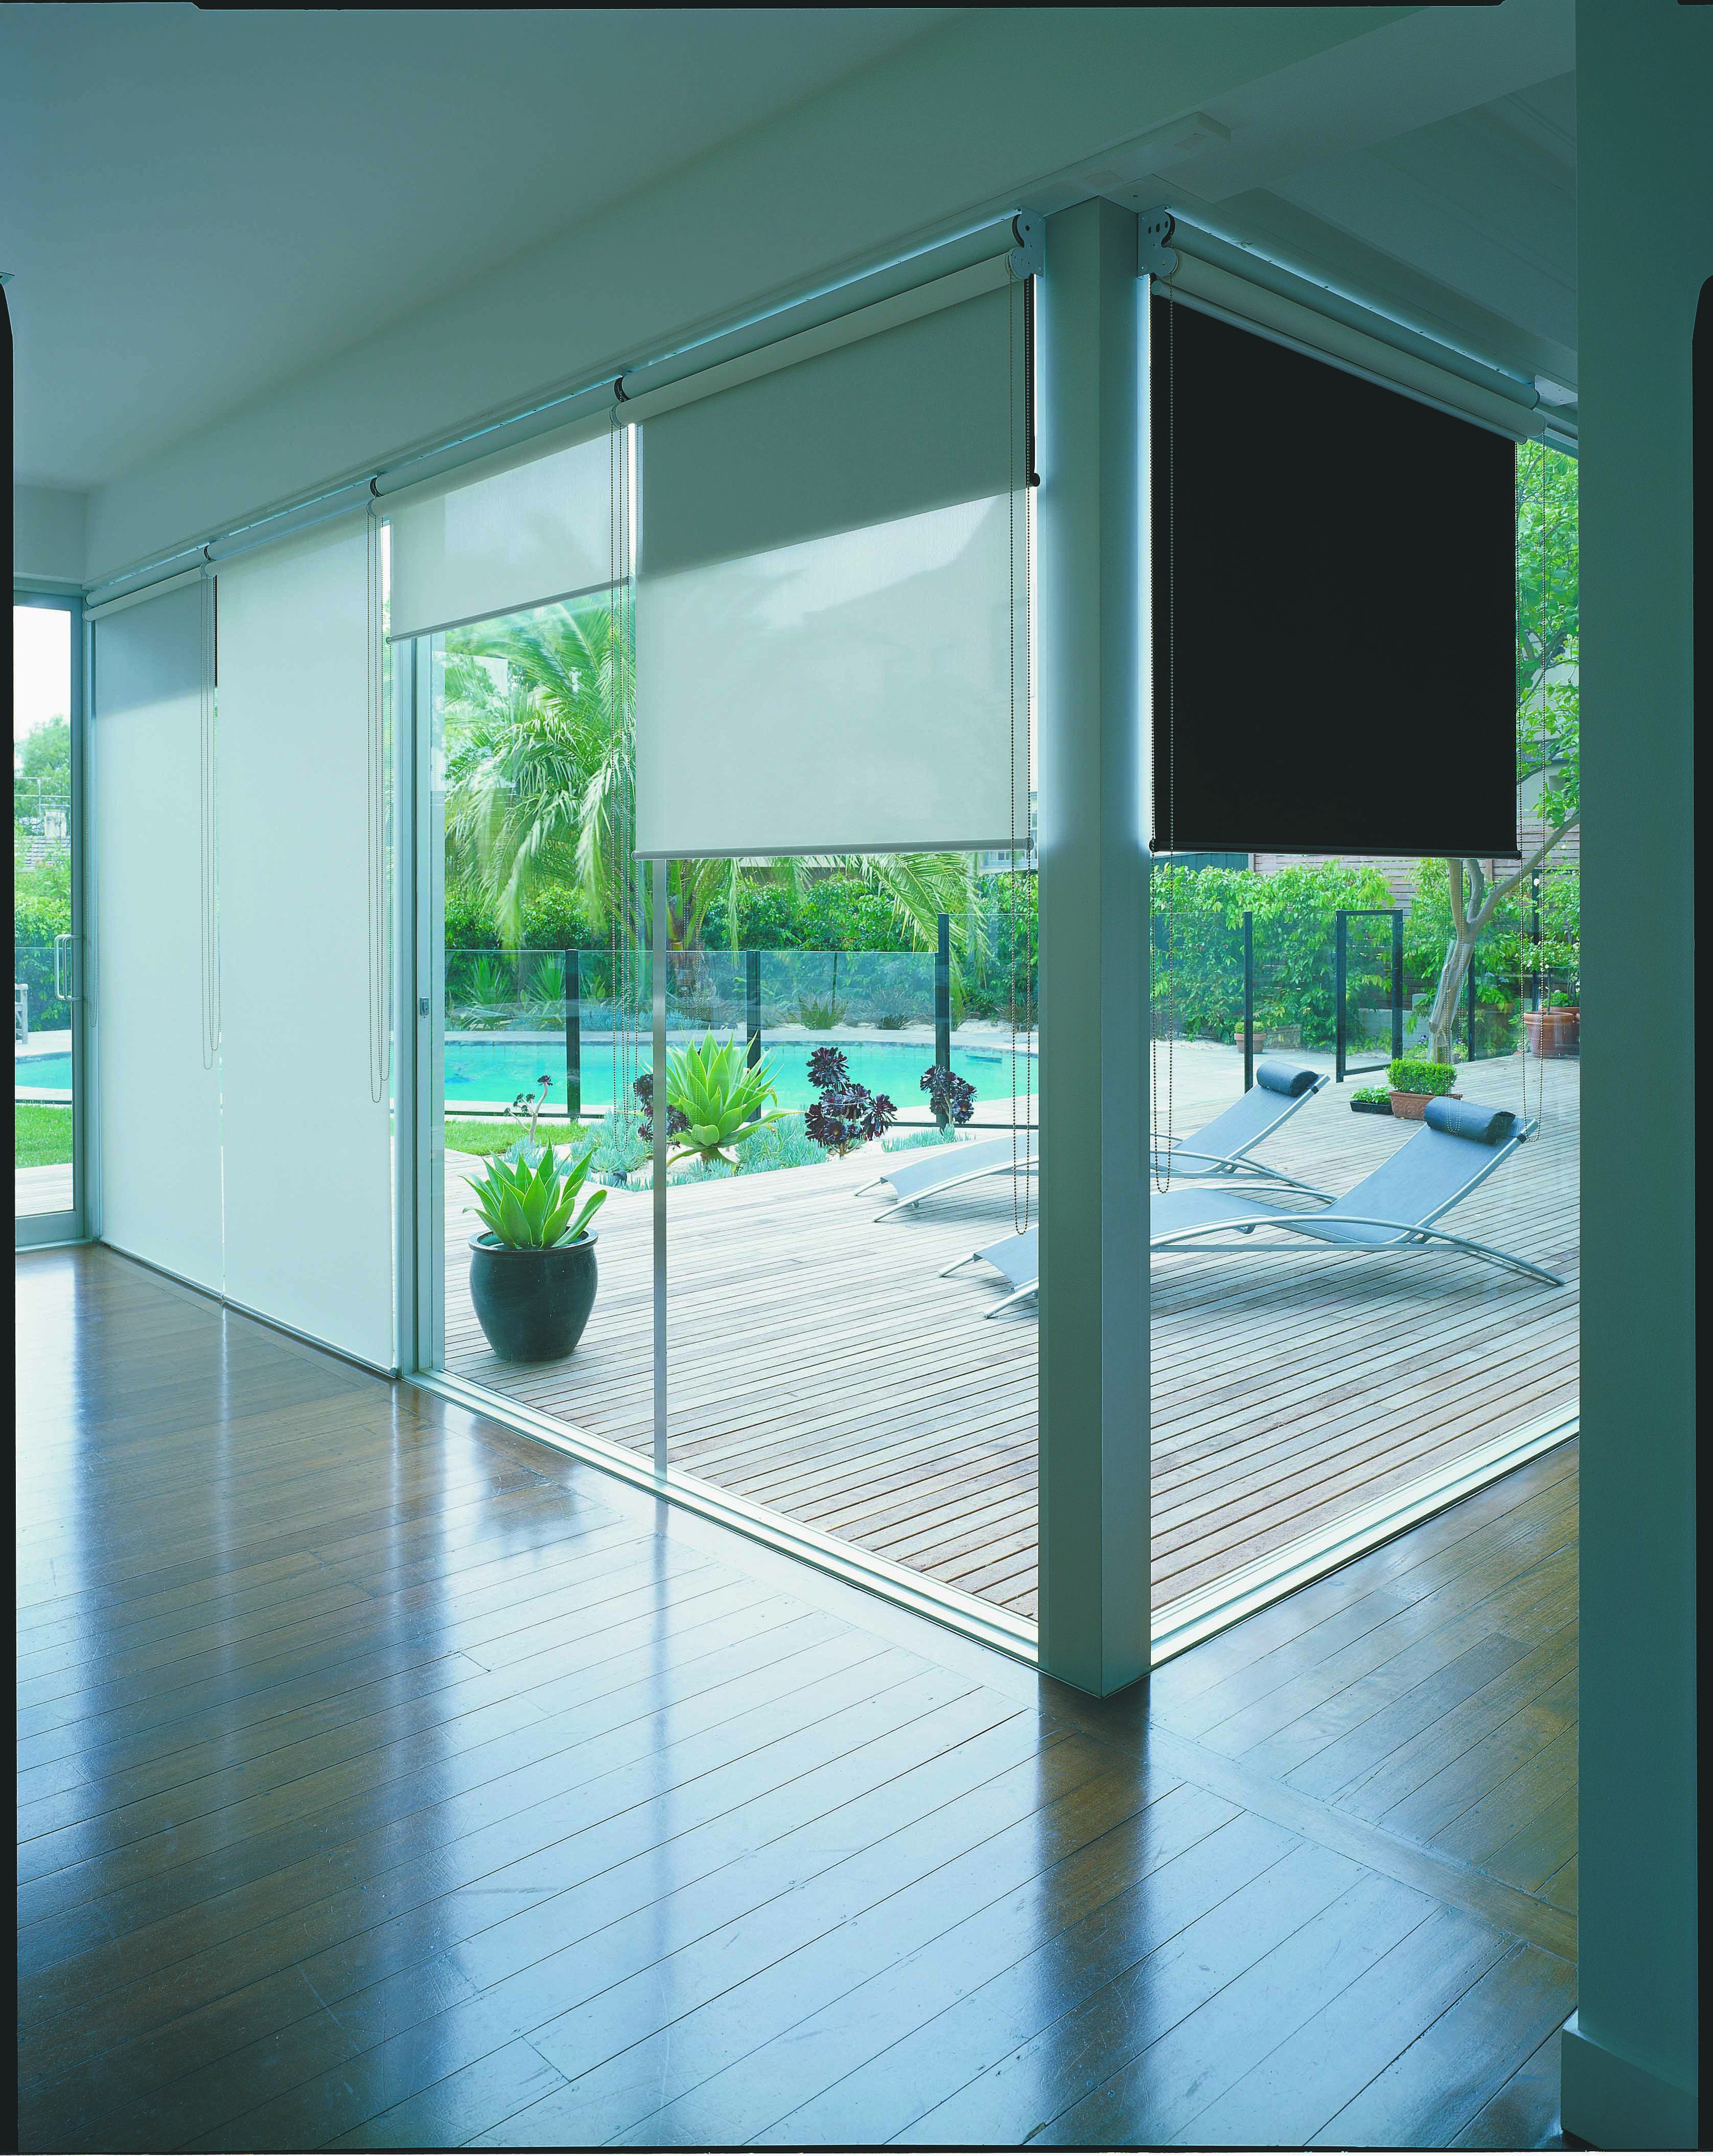 alibaba combi window blind suppliers showroom manufacturers com and day double at blinds whitening korea roller cream